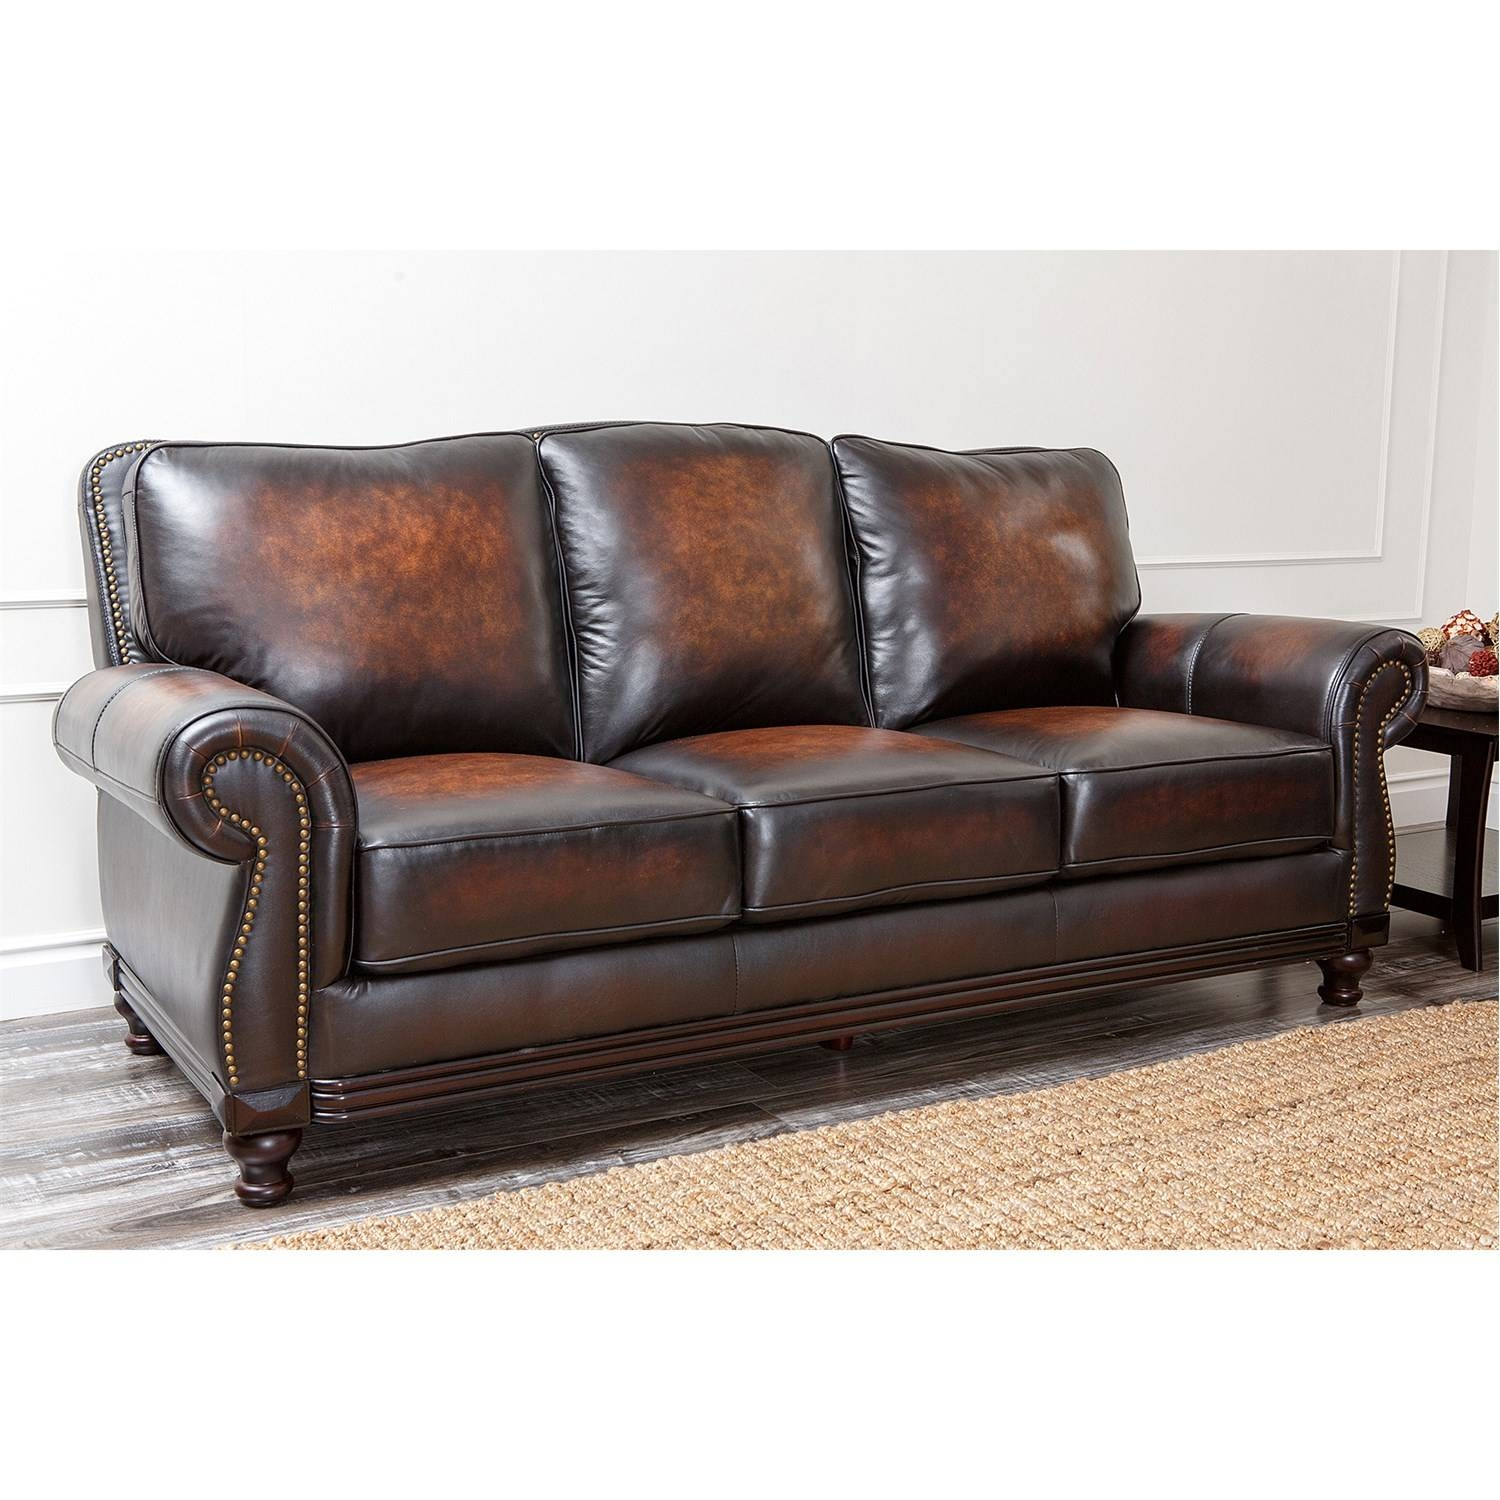 Abbyson Living Ci-N180-Brn-3 Barclay Hand-Rubbed Leather Sofa with Abbyson Sofas (Image 5 of 15)